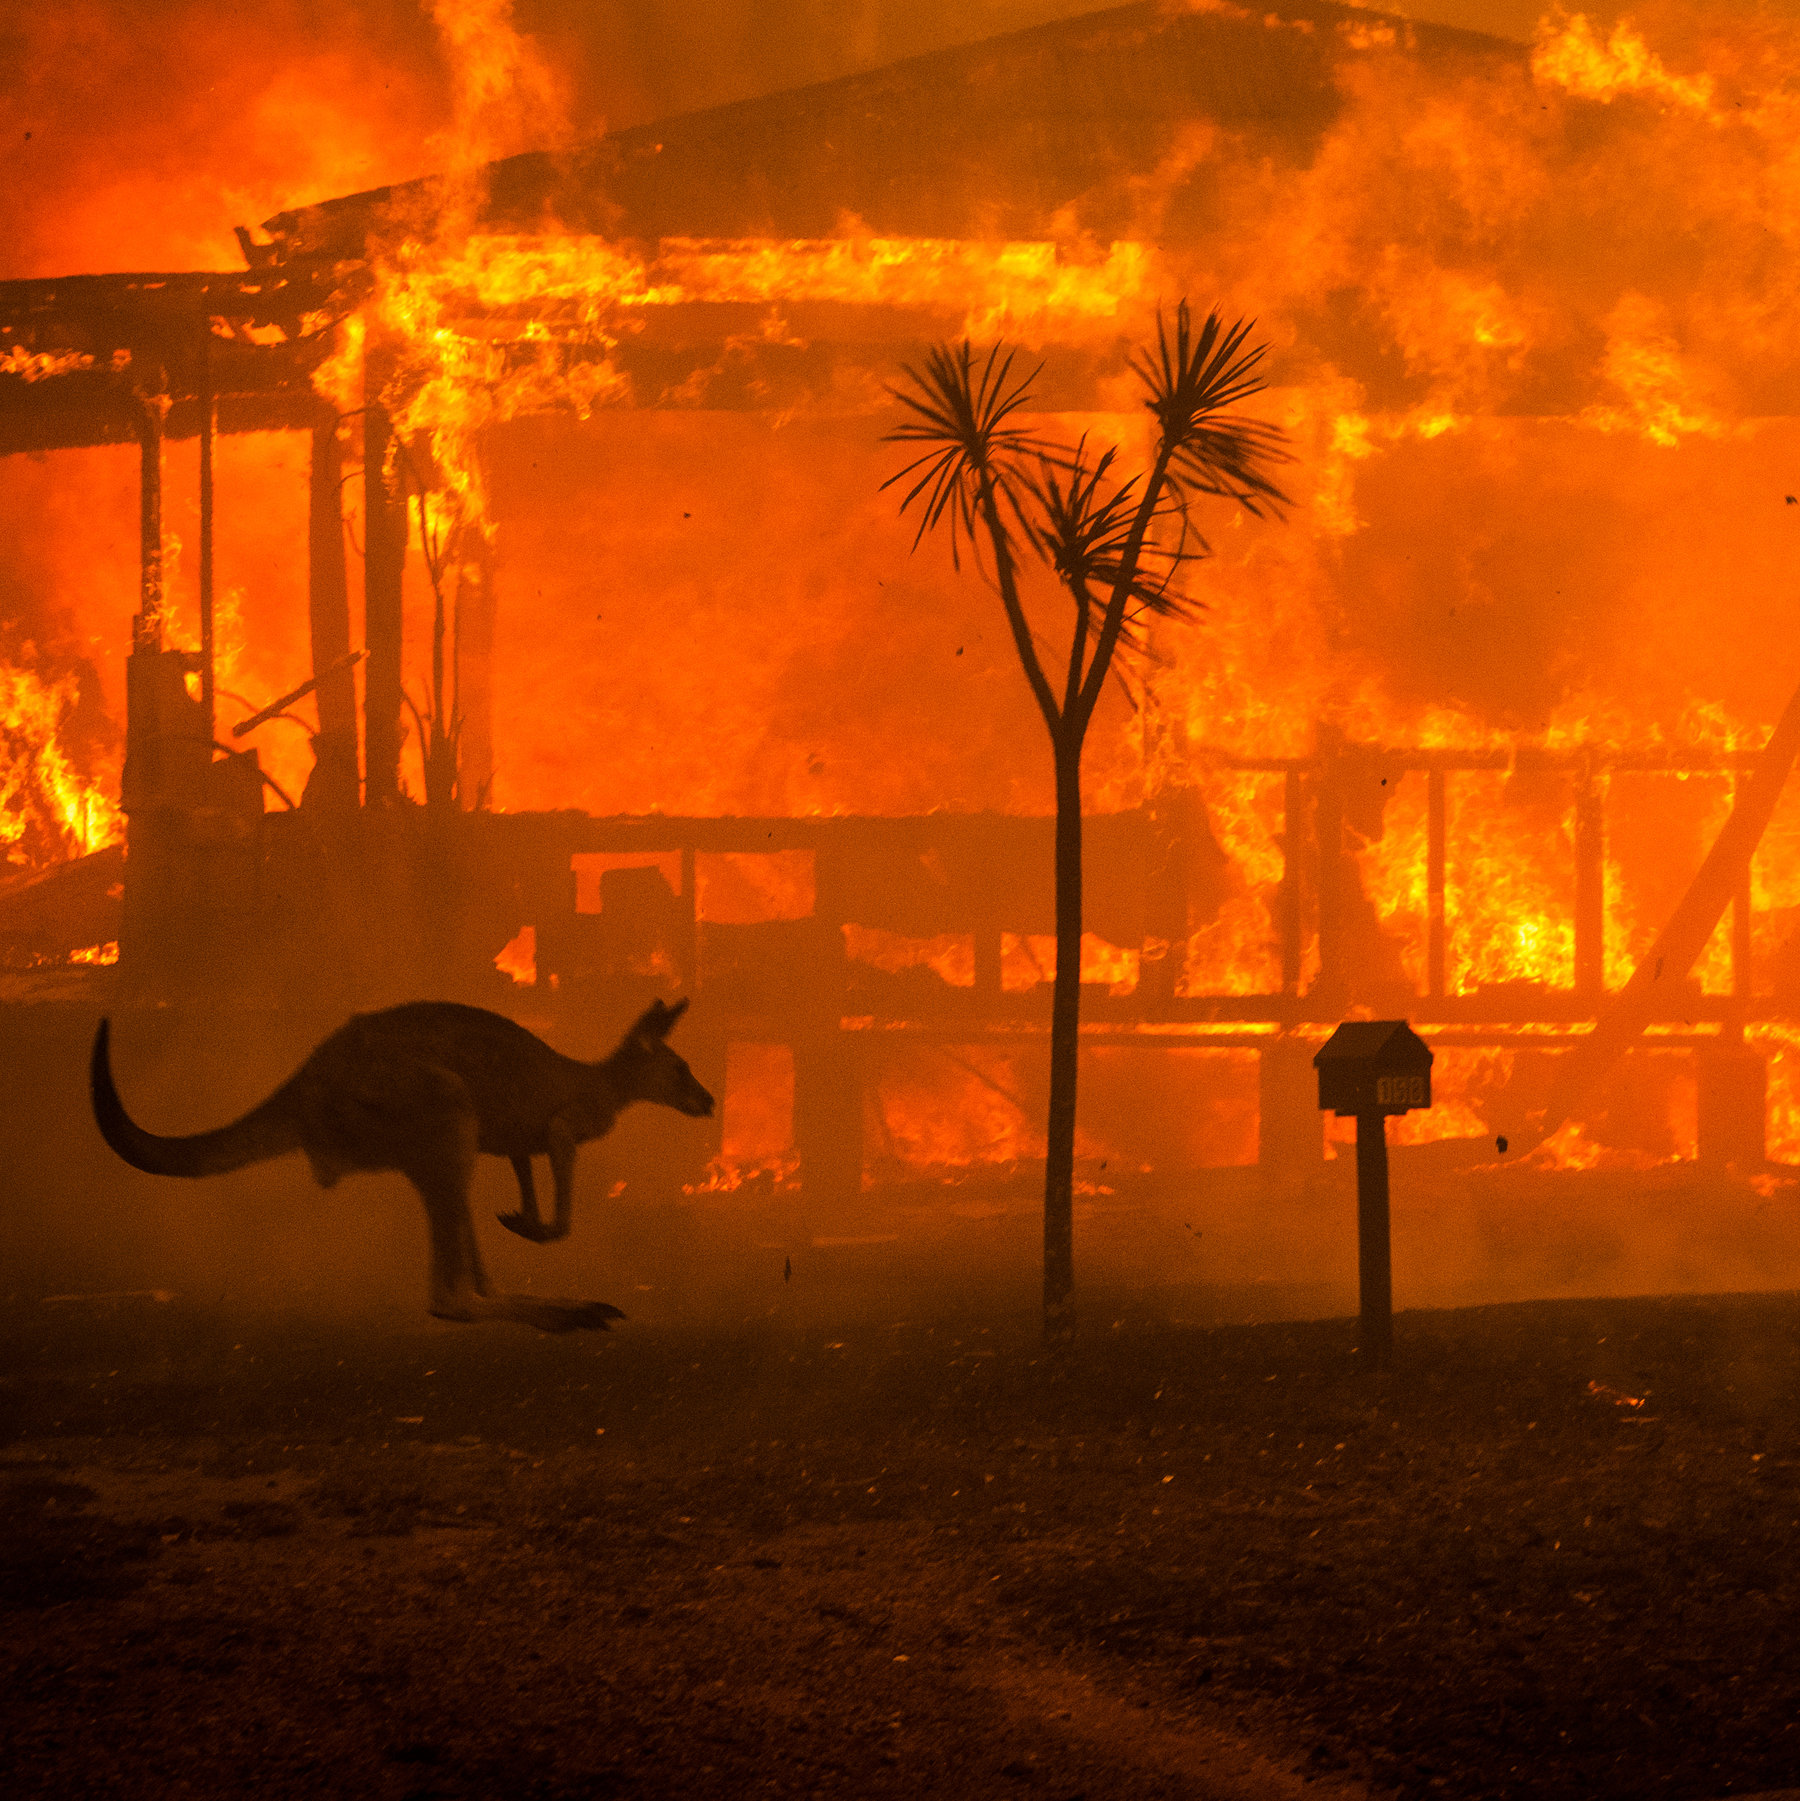 The unexpected link between Kenya's unusual torrential flooding and Australia's bushfires